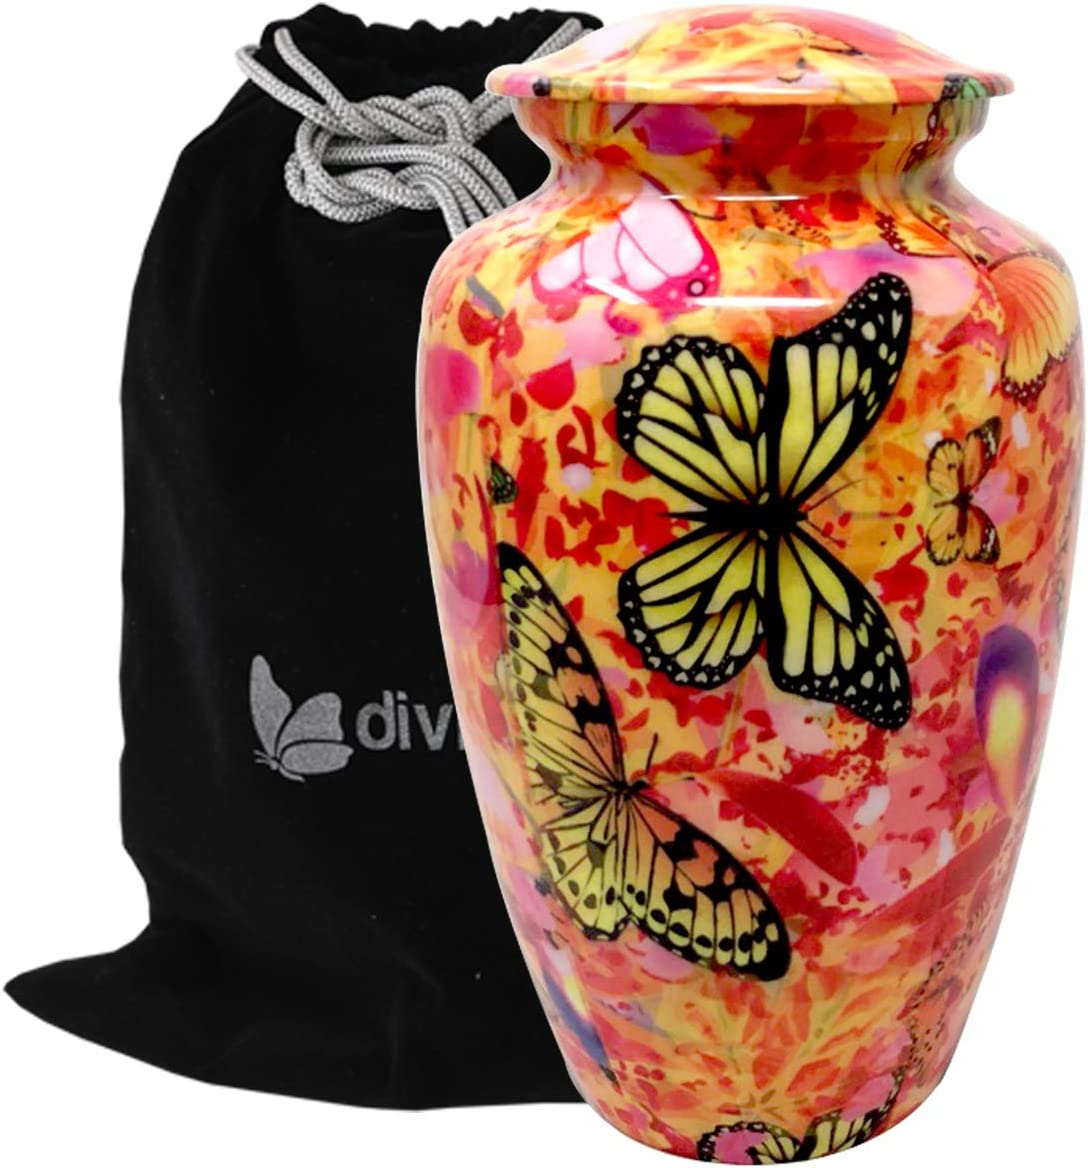 Liveurns Butterfly Camouflage Metal Cremation Urn - Adult Urn - Solid Metal Funeral Urn - Handcrafted Adult Funeral Urn for Ashes - Great Urn Deal - Free Bag Included